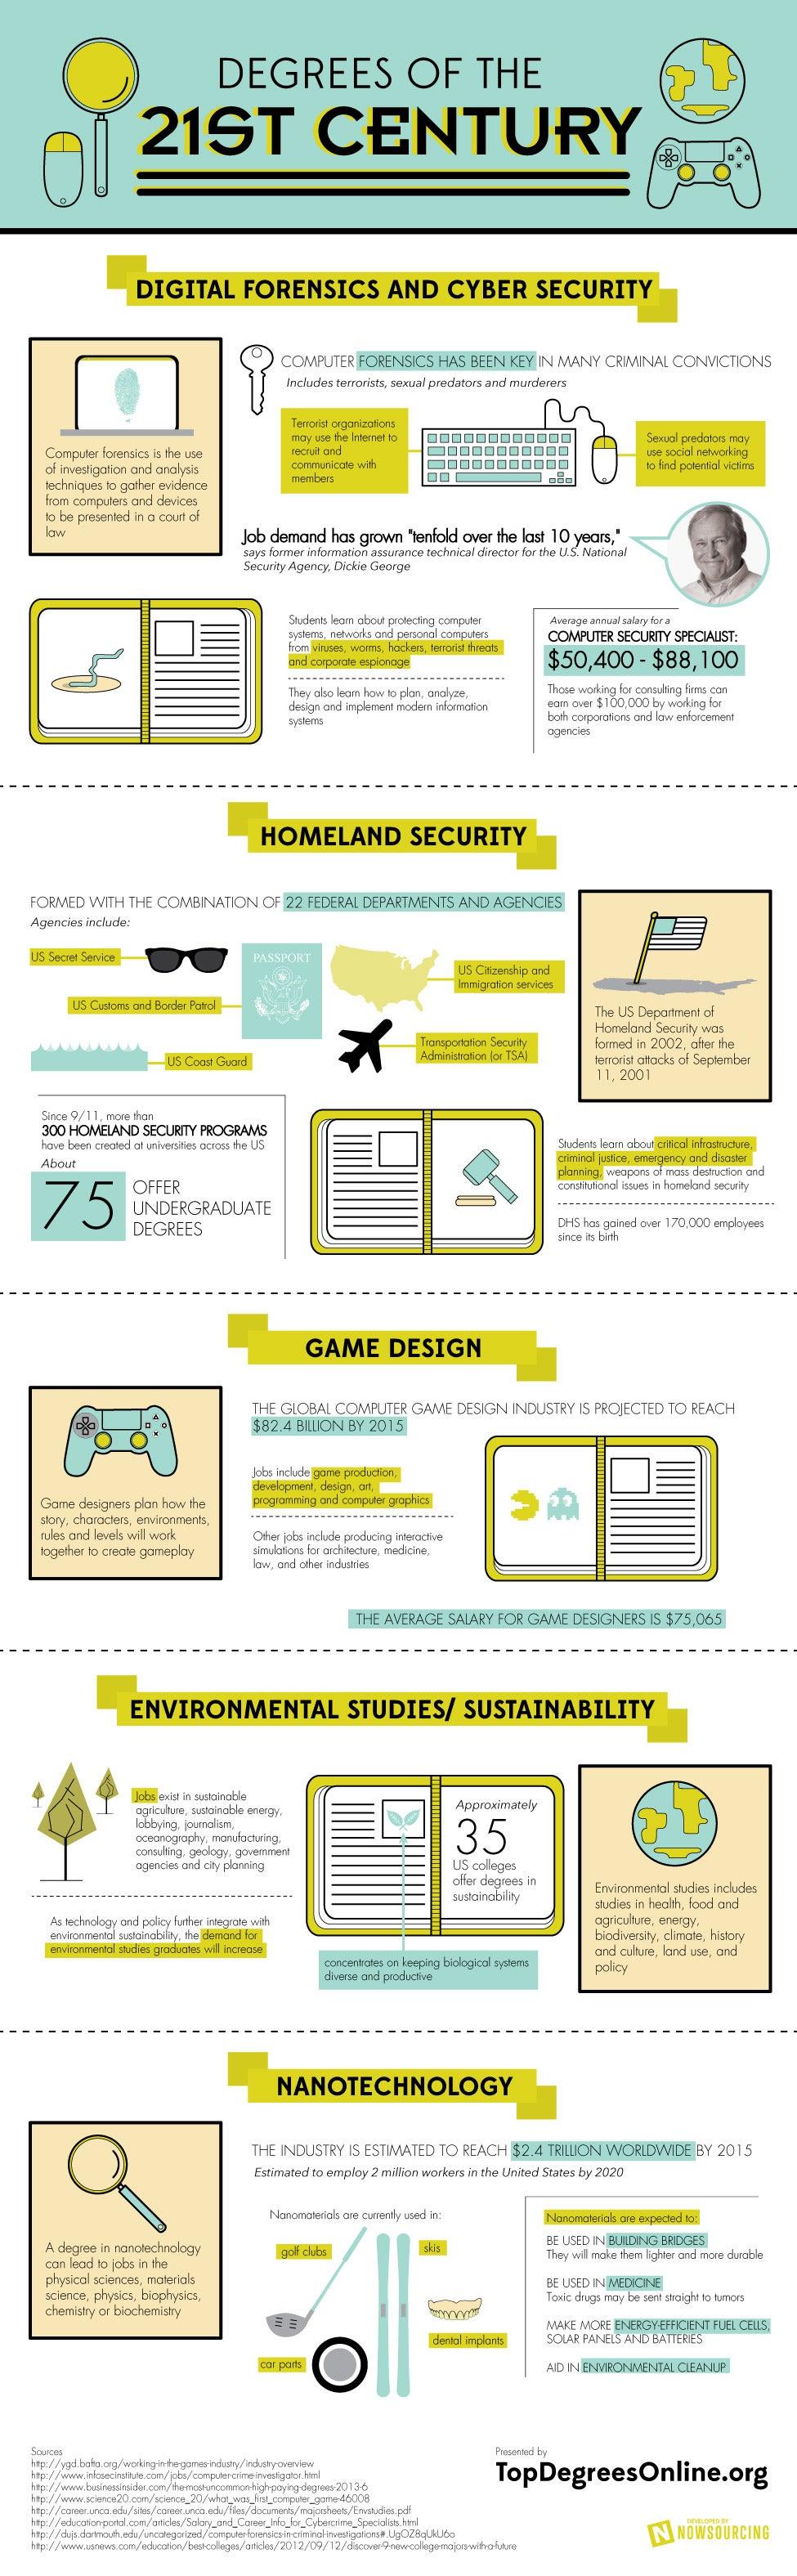 From Cyber Security to Video Game Design: The College Degrees of the 21st Century (Infographic)